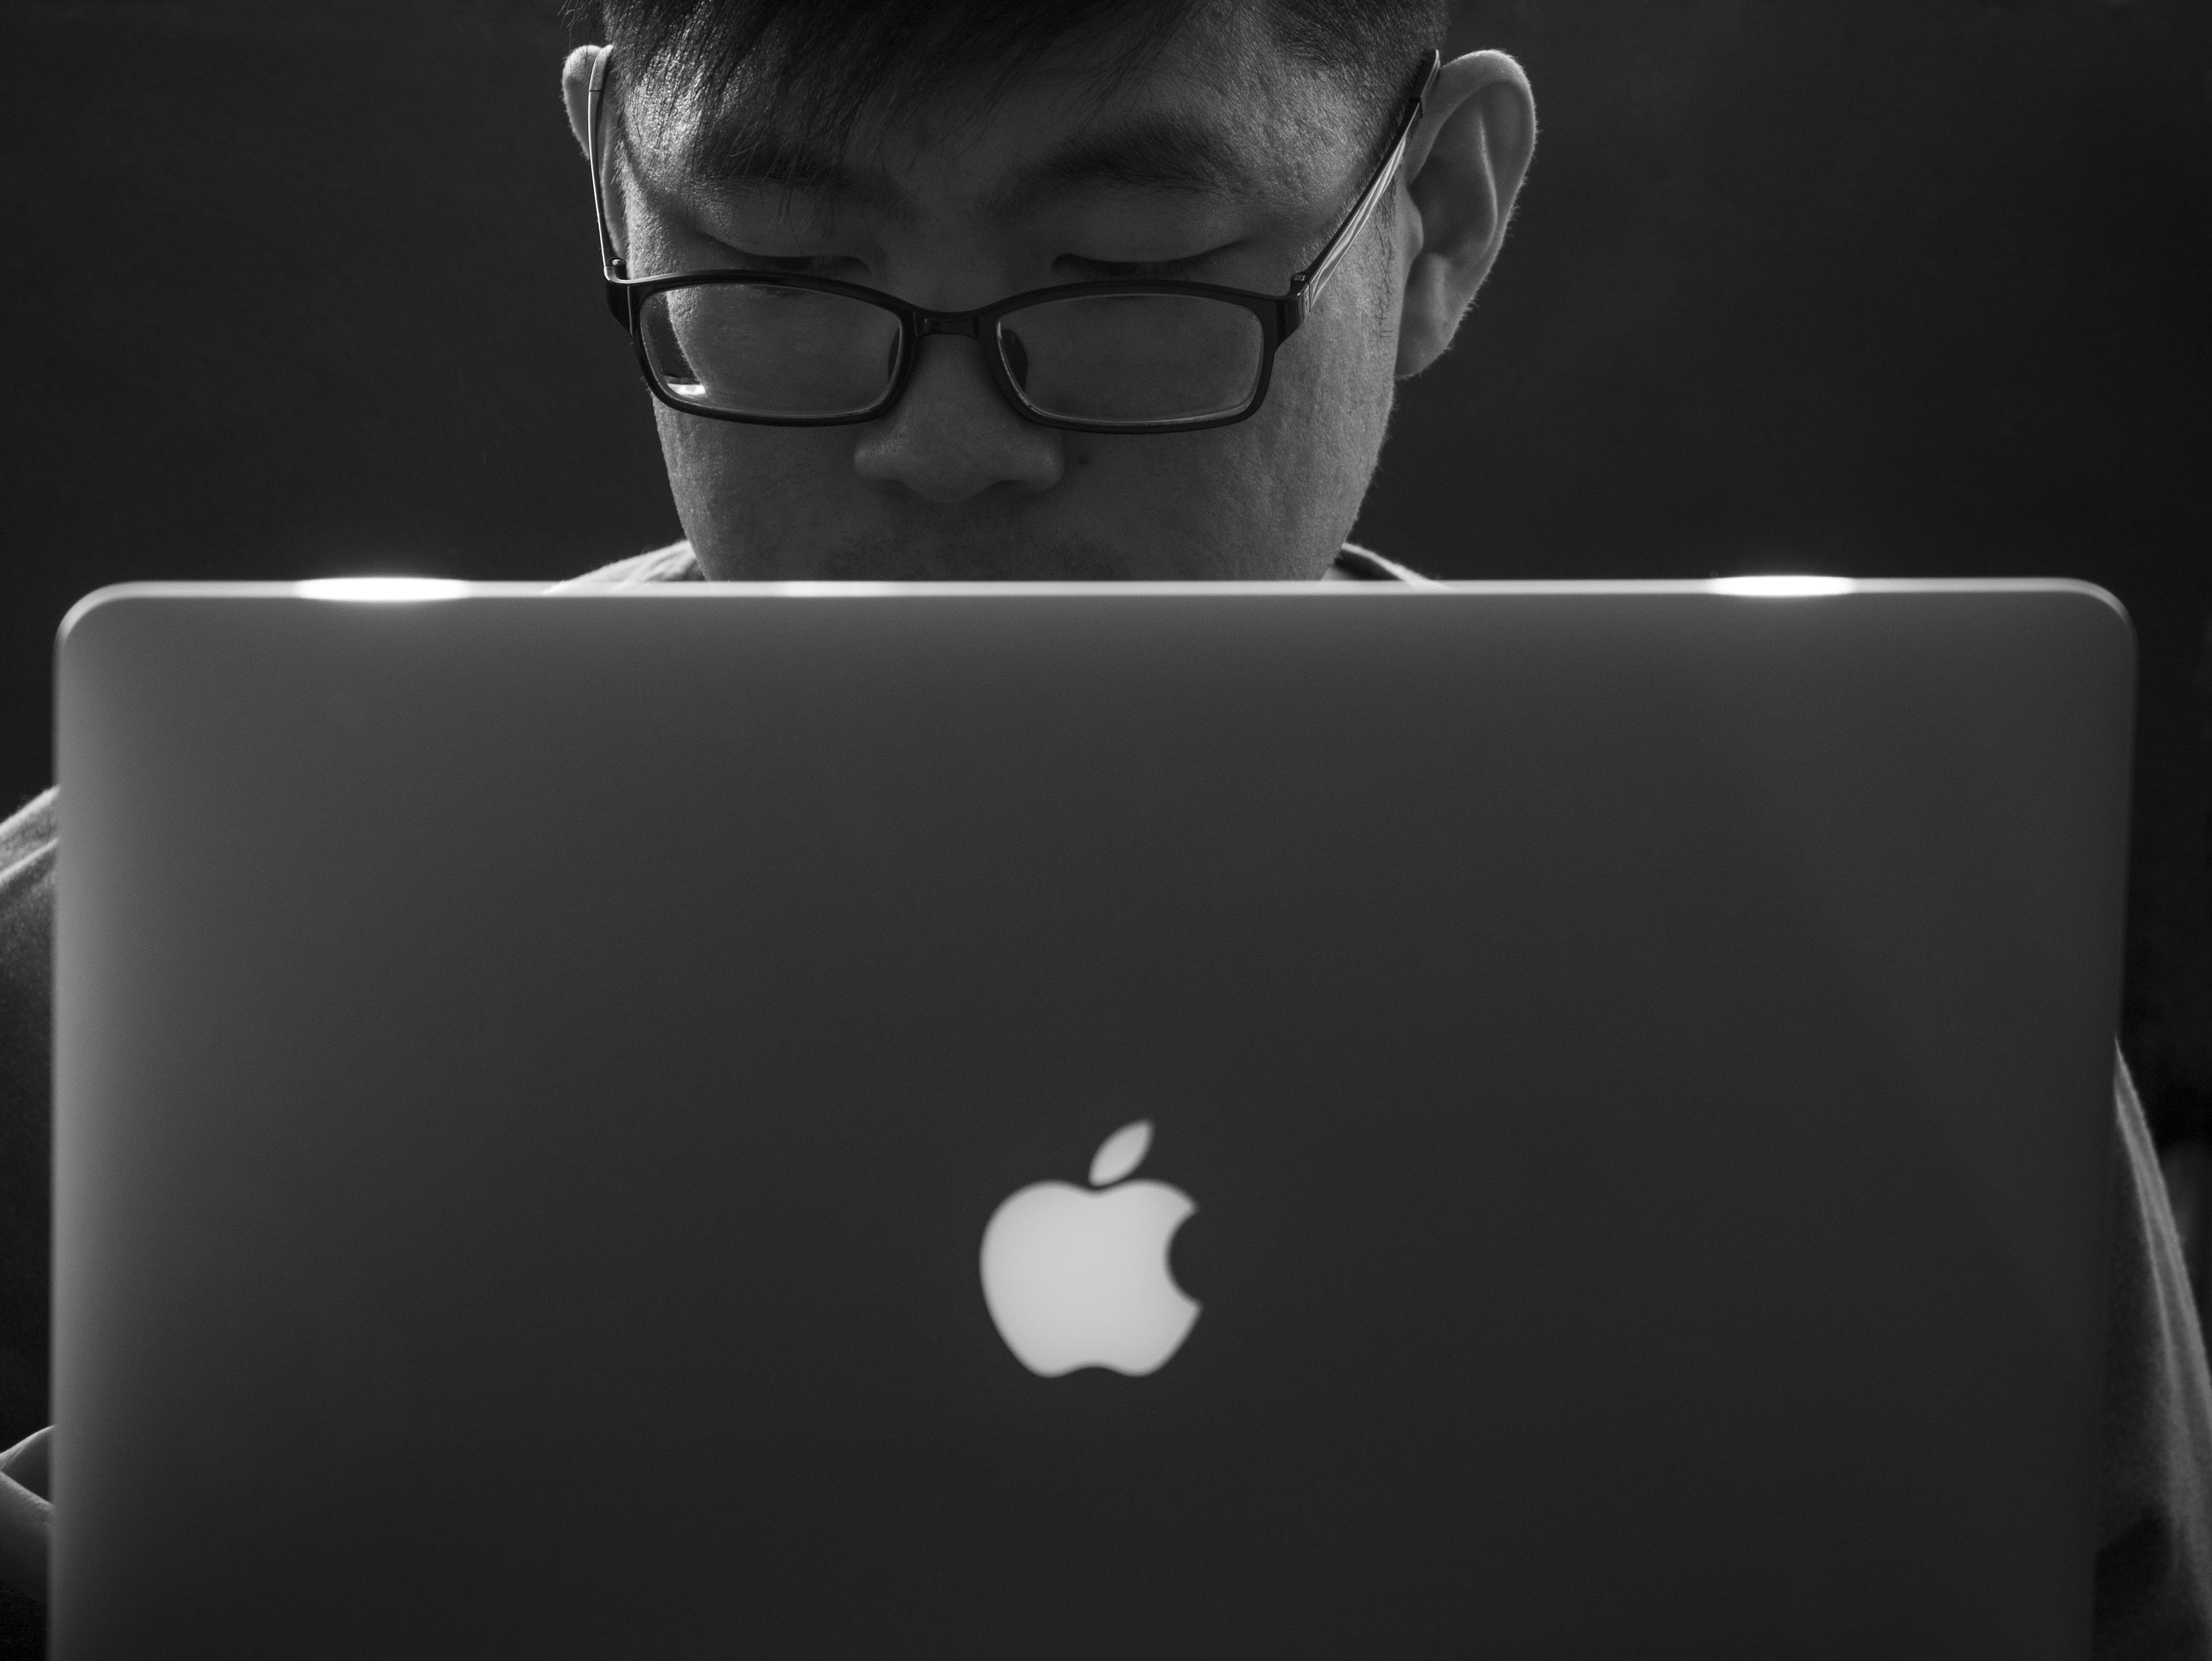 Free stock photo of apple, black and white, computer, laptop